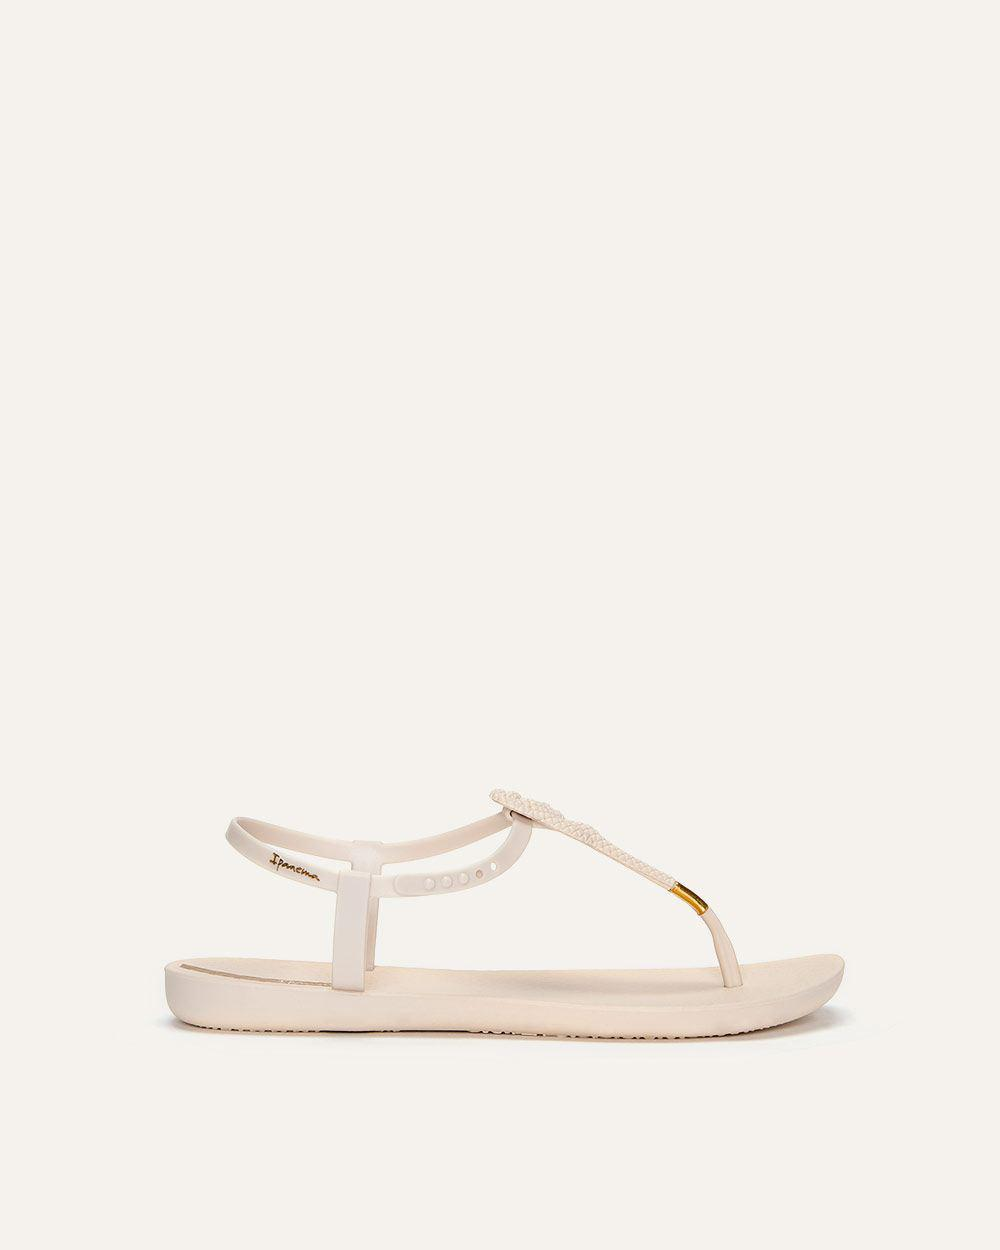 1359a8c84 Lyst - Addition Elle Ipanema Mara Sandals in Natural